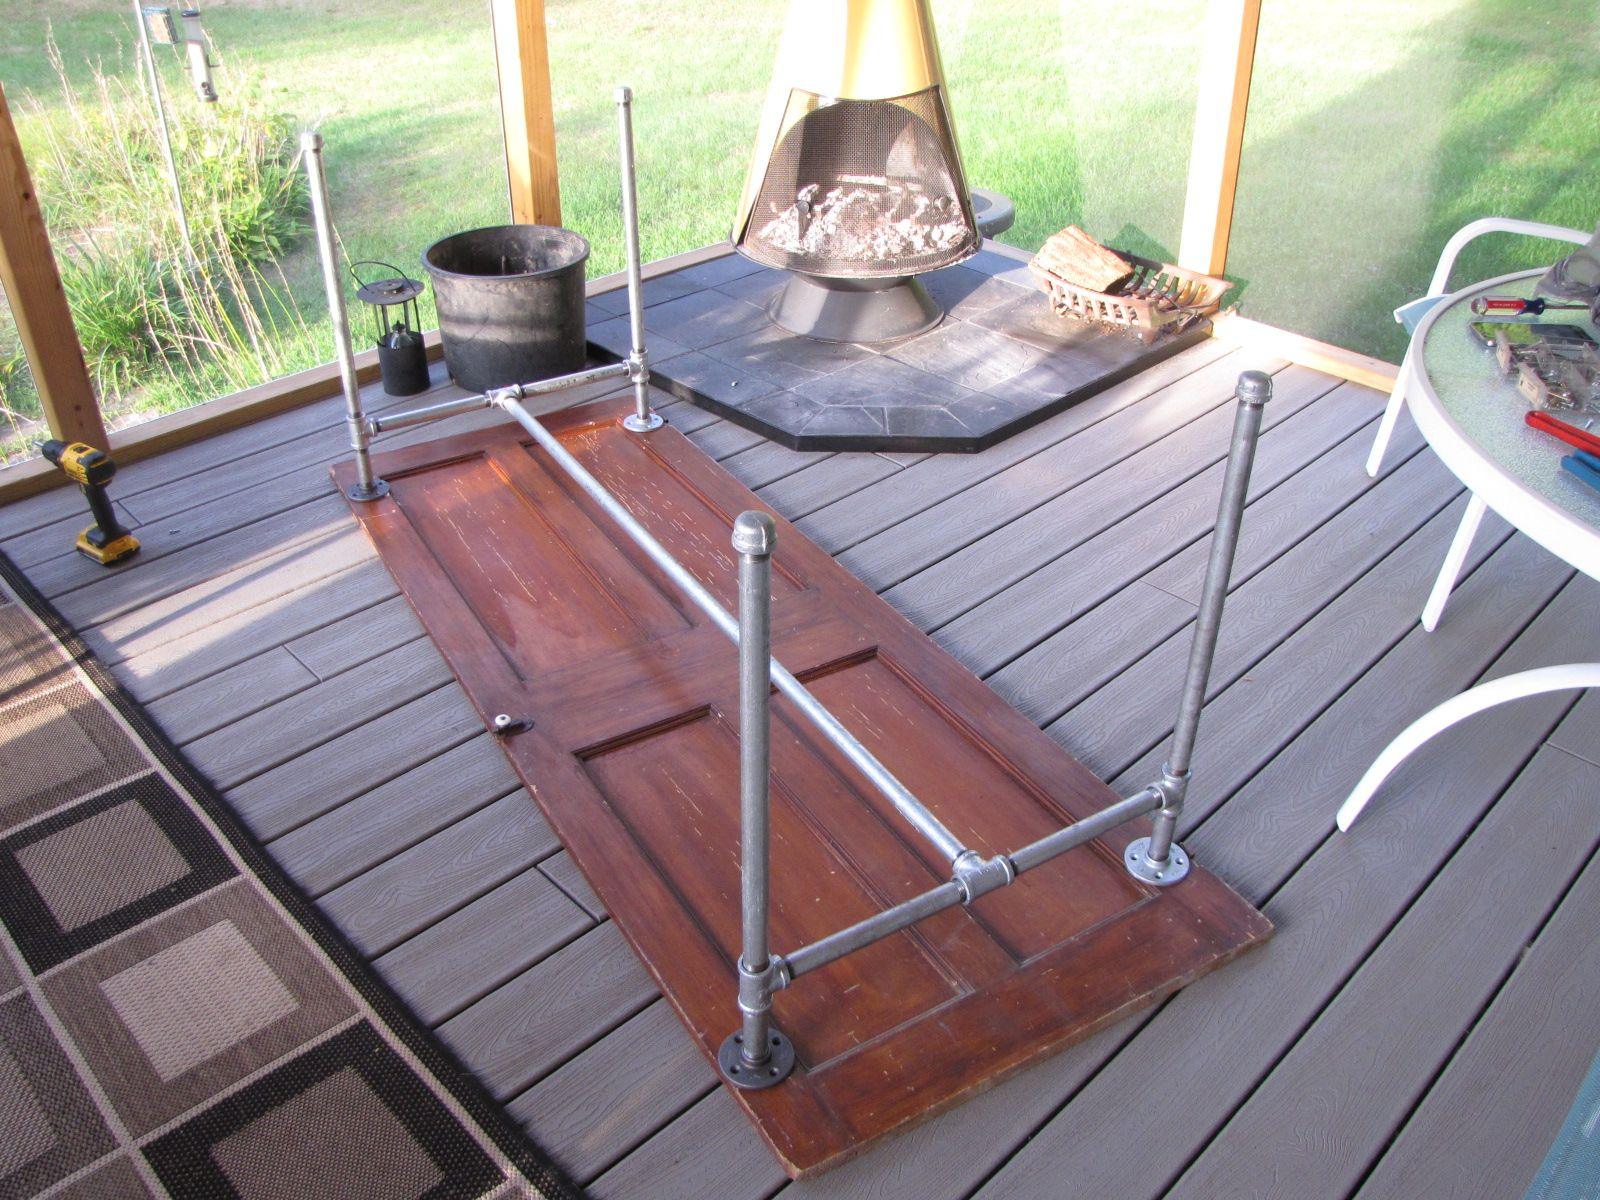 How We Took An Old Door And Galvanized Pipe To Make A Totally Awesome Table.